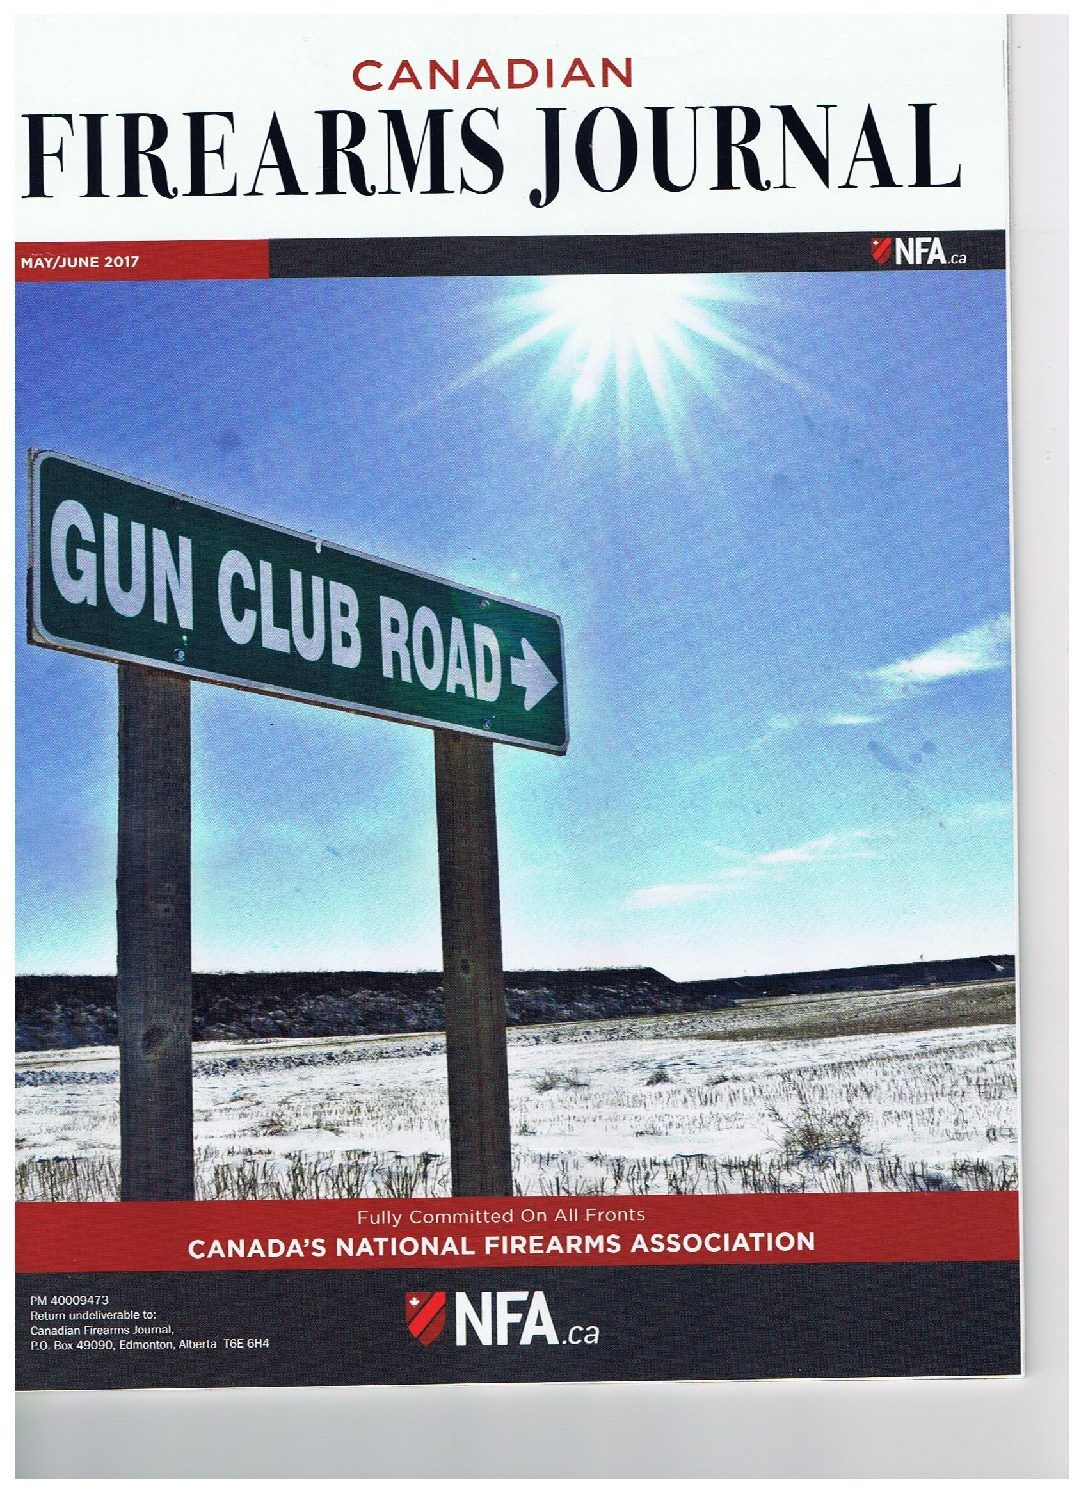 Special thanks to Sheldon Clare, NFA President for his permission to reprint this article from the Canadian Firearms Journal, May-June issue. CANADIAN FIREARMS JOURNAL – Want to get the full story? Become a member now and receive 6 bi-monthly issues of the Canadian Firearms Journal. All this, for a little as $35.00/year https://nfa.ca/news-media/cfj/